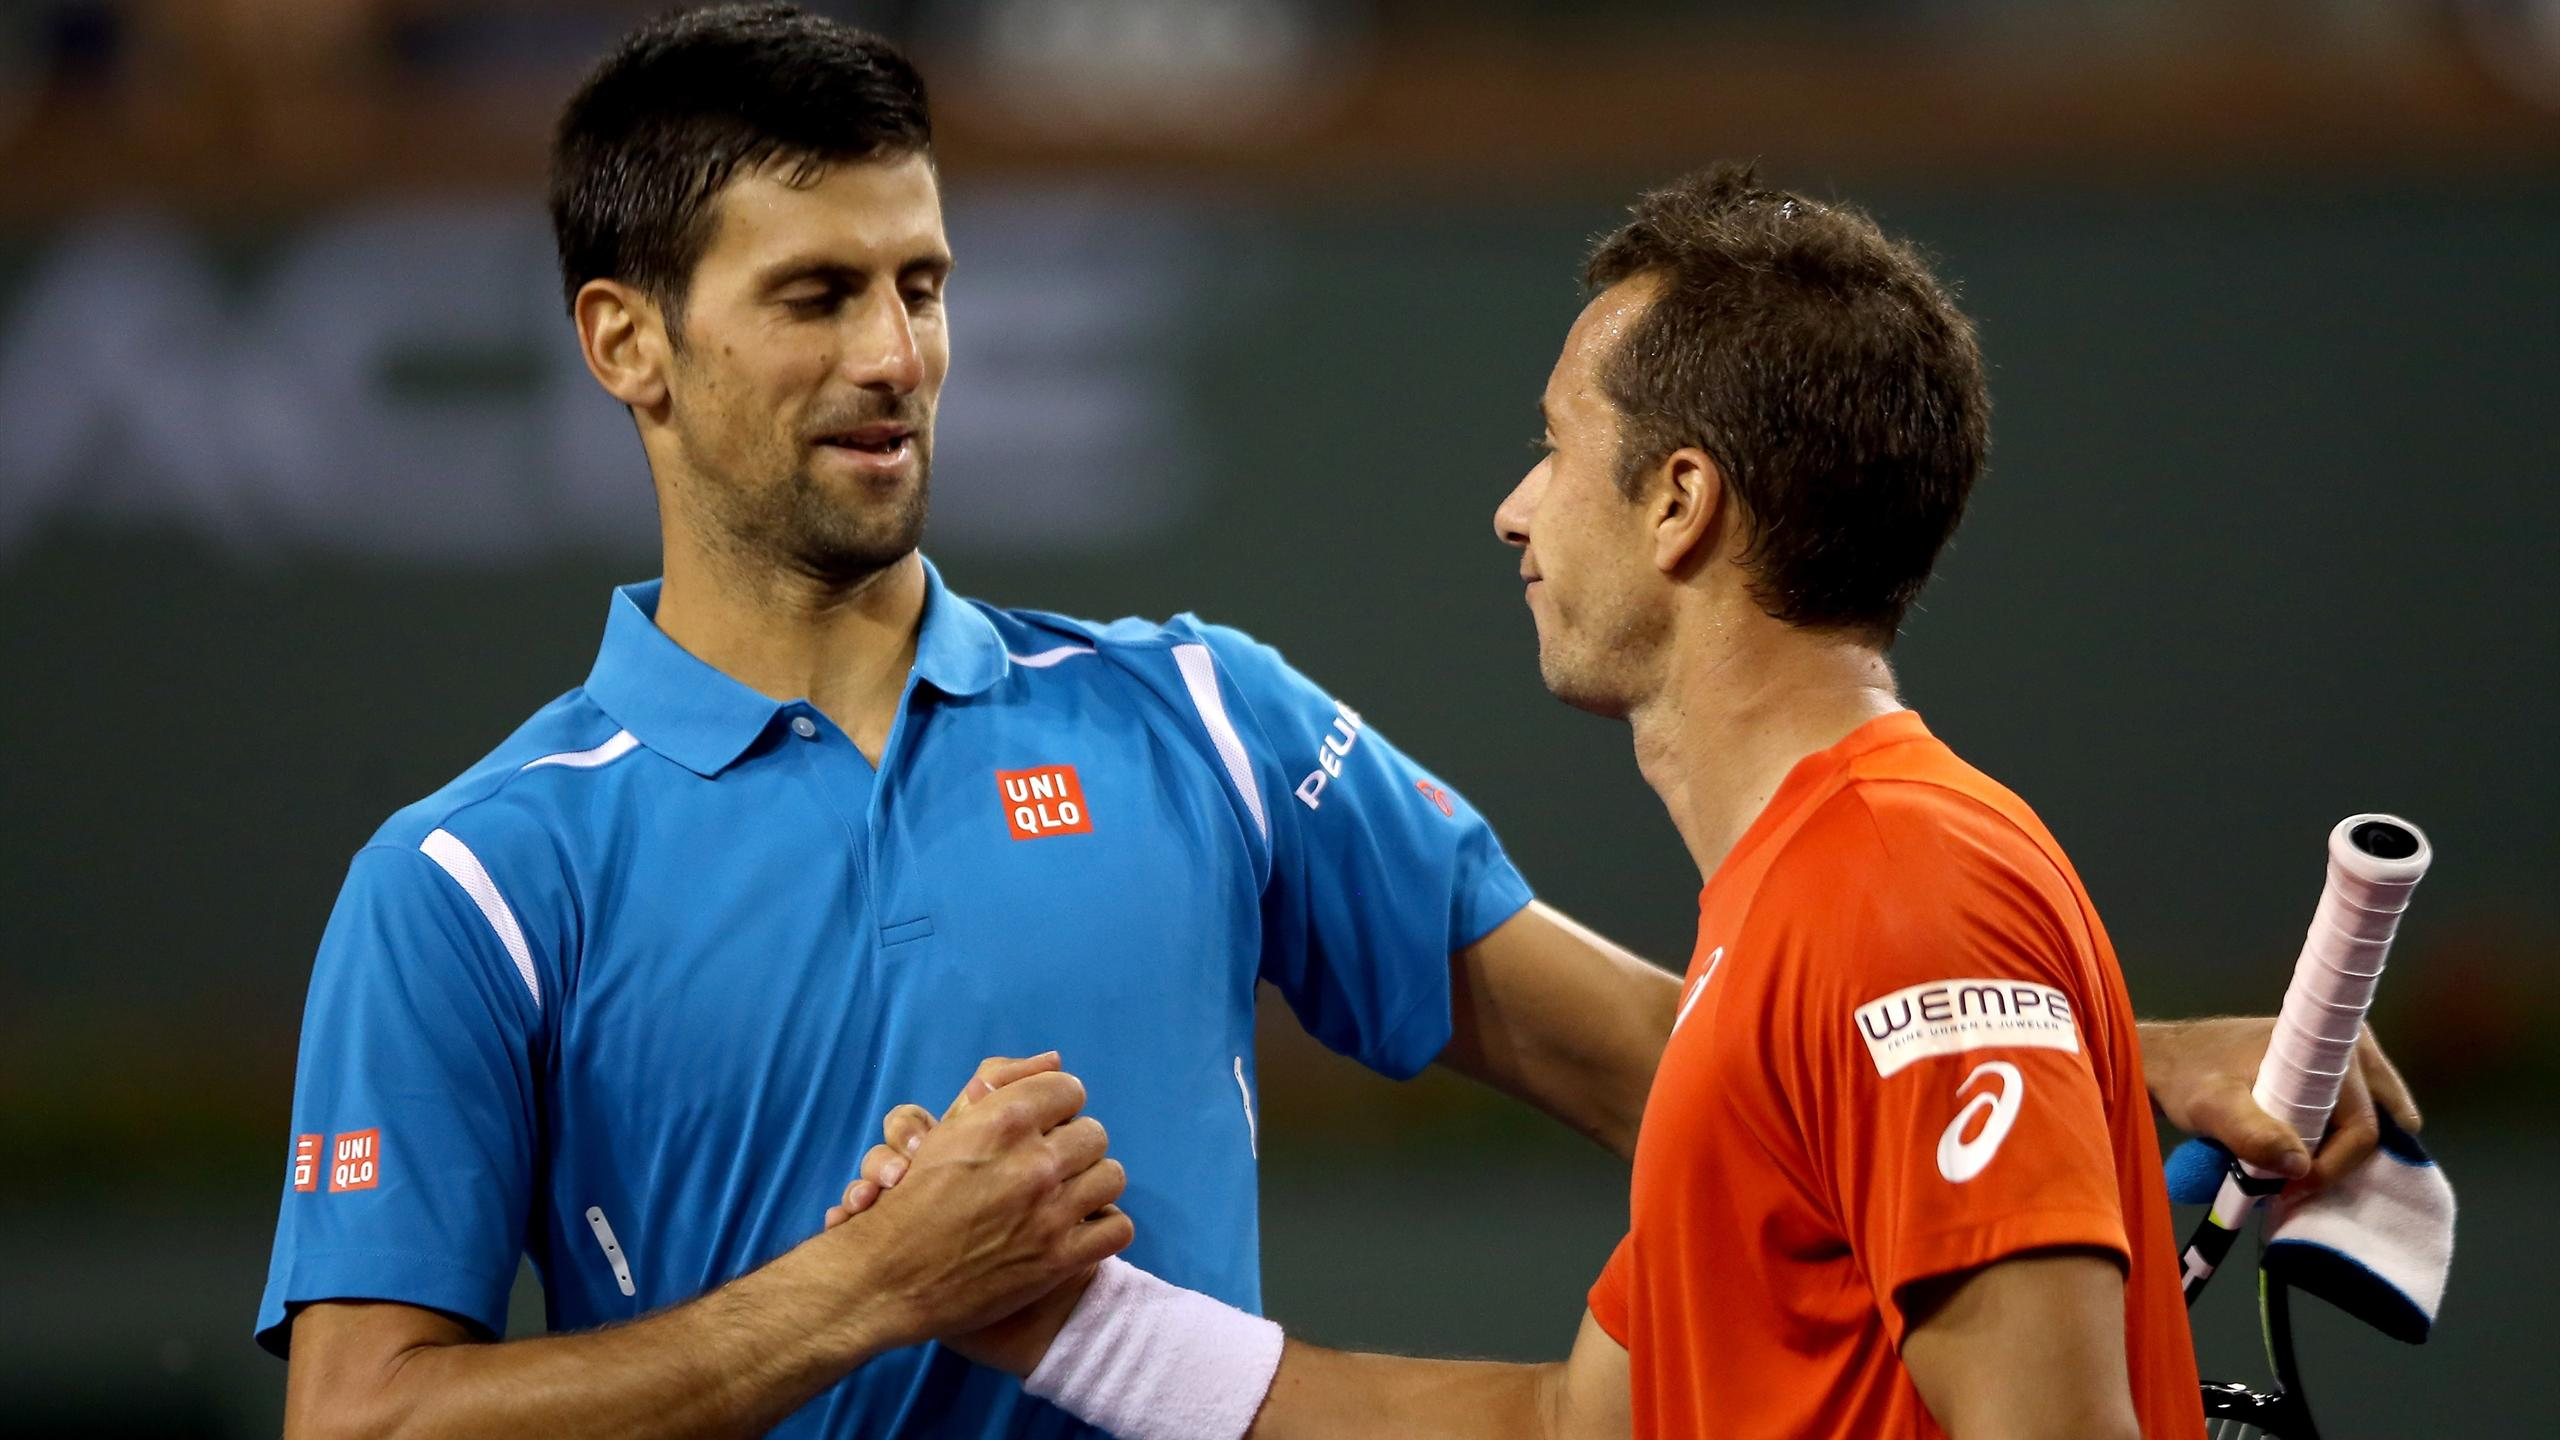 Novak Djokovic of Serbia is congratulated by Philipp Kohlschreiber of Germany after their match at Indian Wells